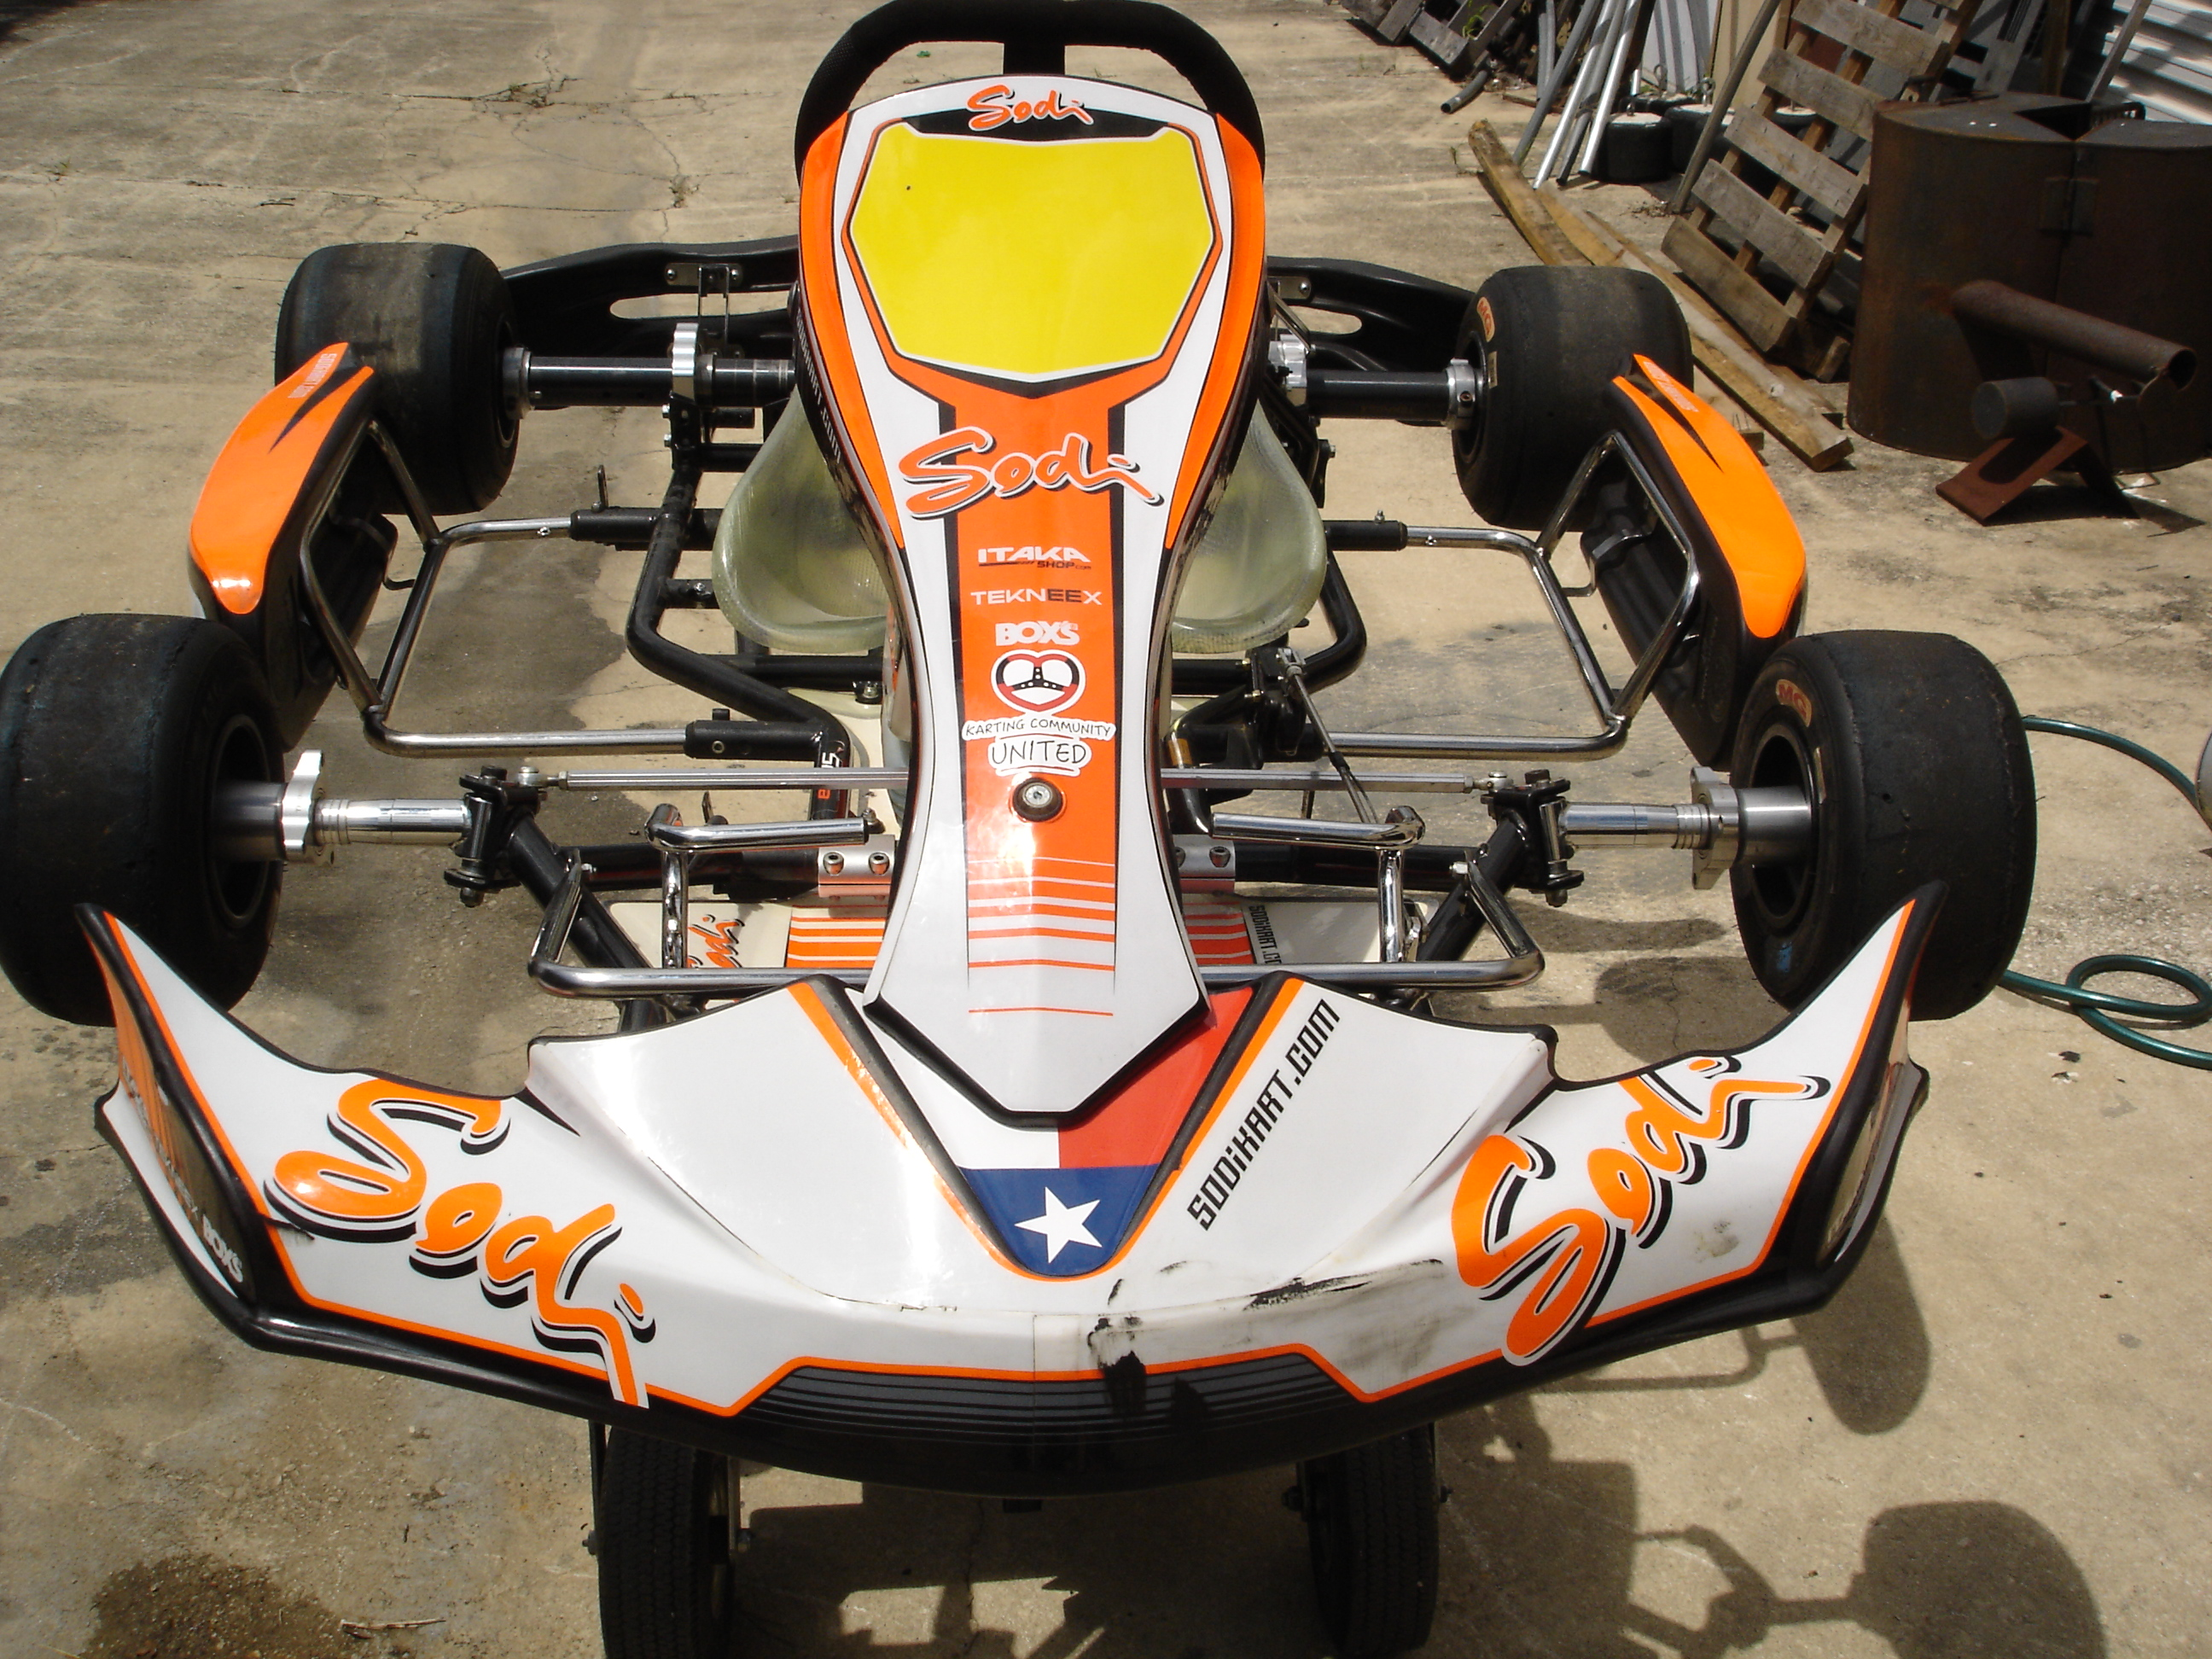 Used go karts for sale in texas - Free madden 25 cards